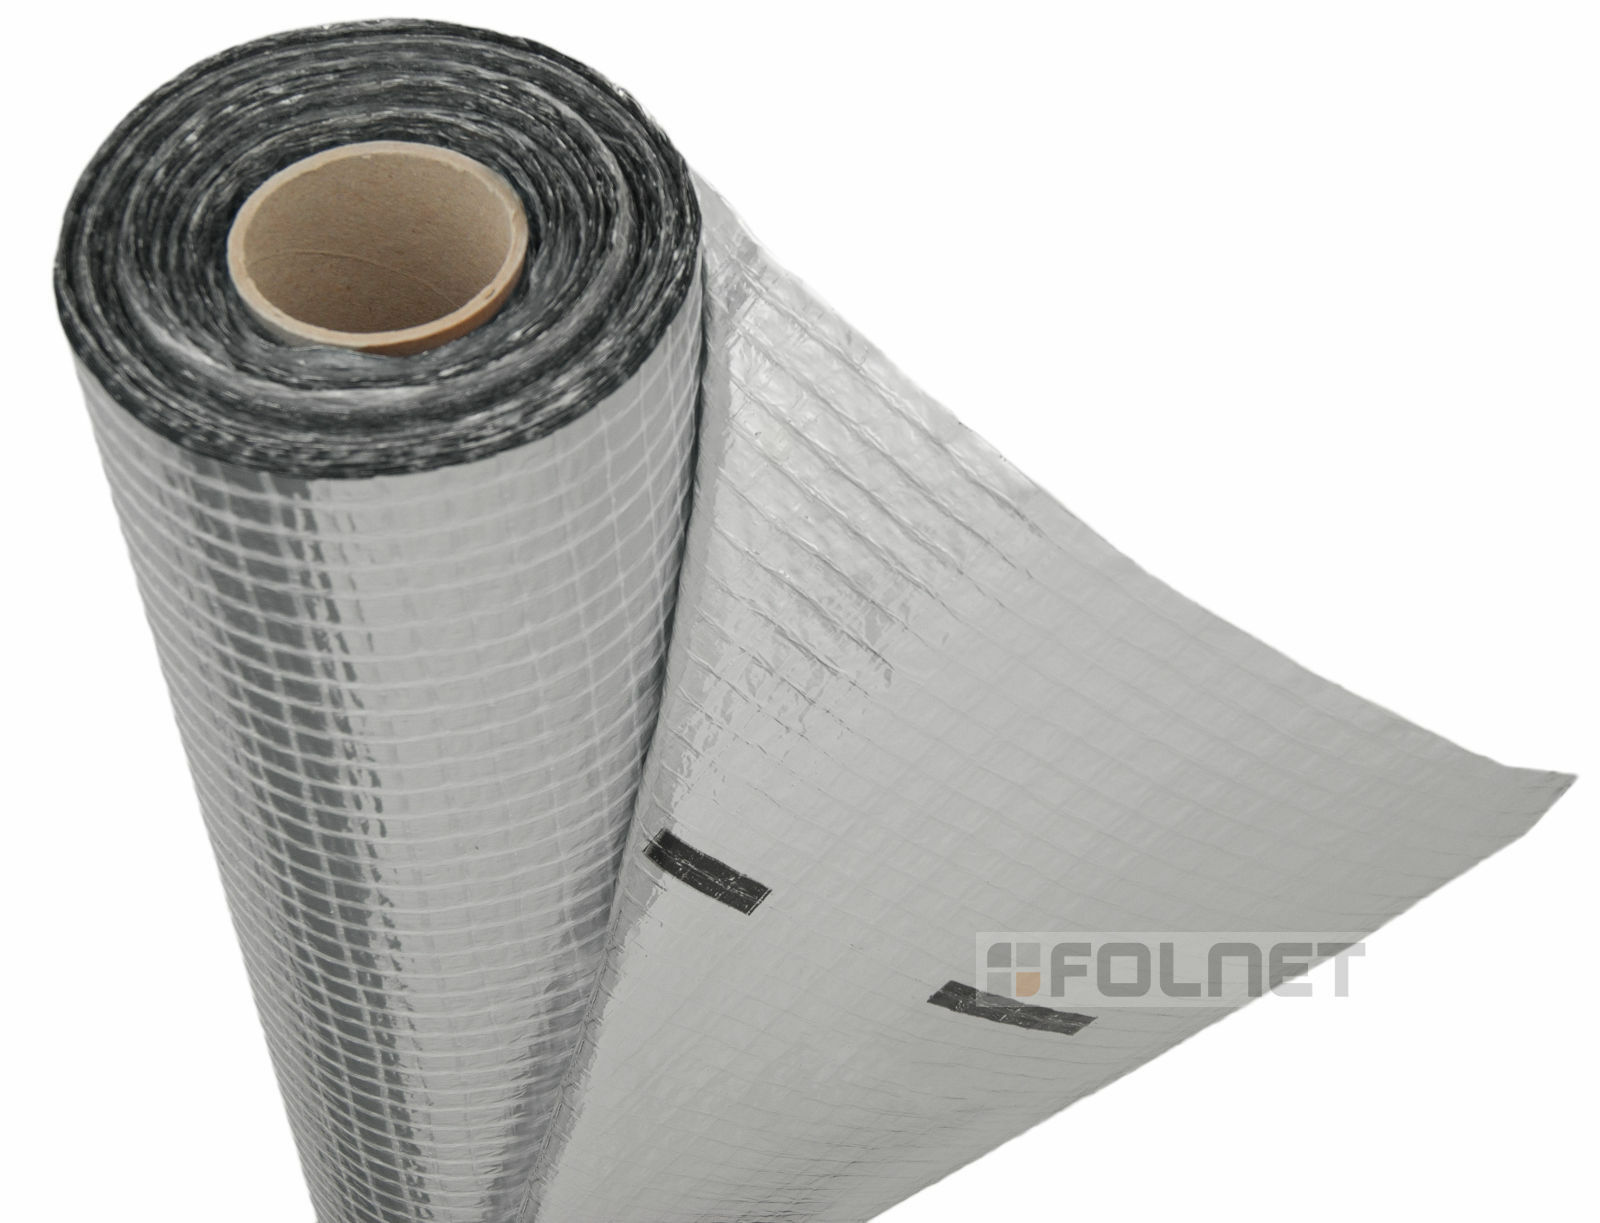 Vapour barrier thermal insulation aluminium foil membrane for Fireproof vapor barrier